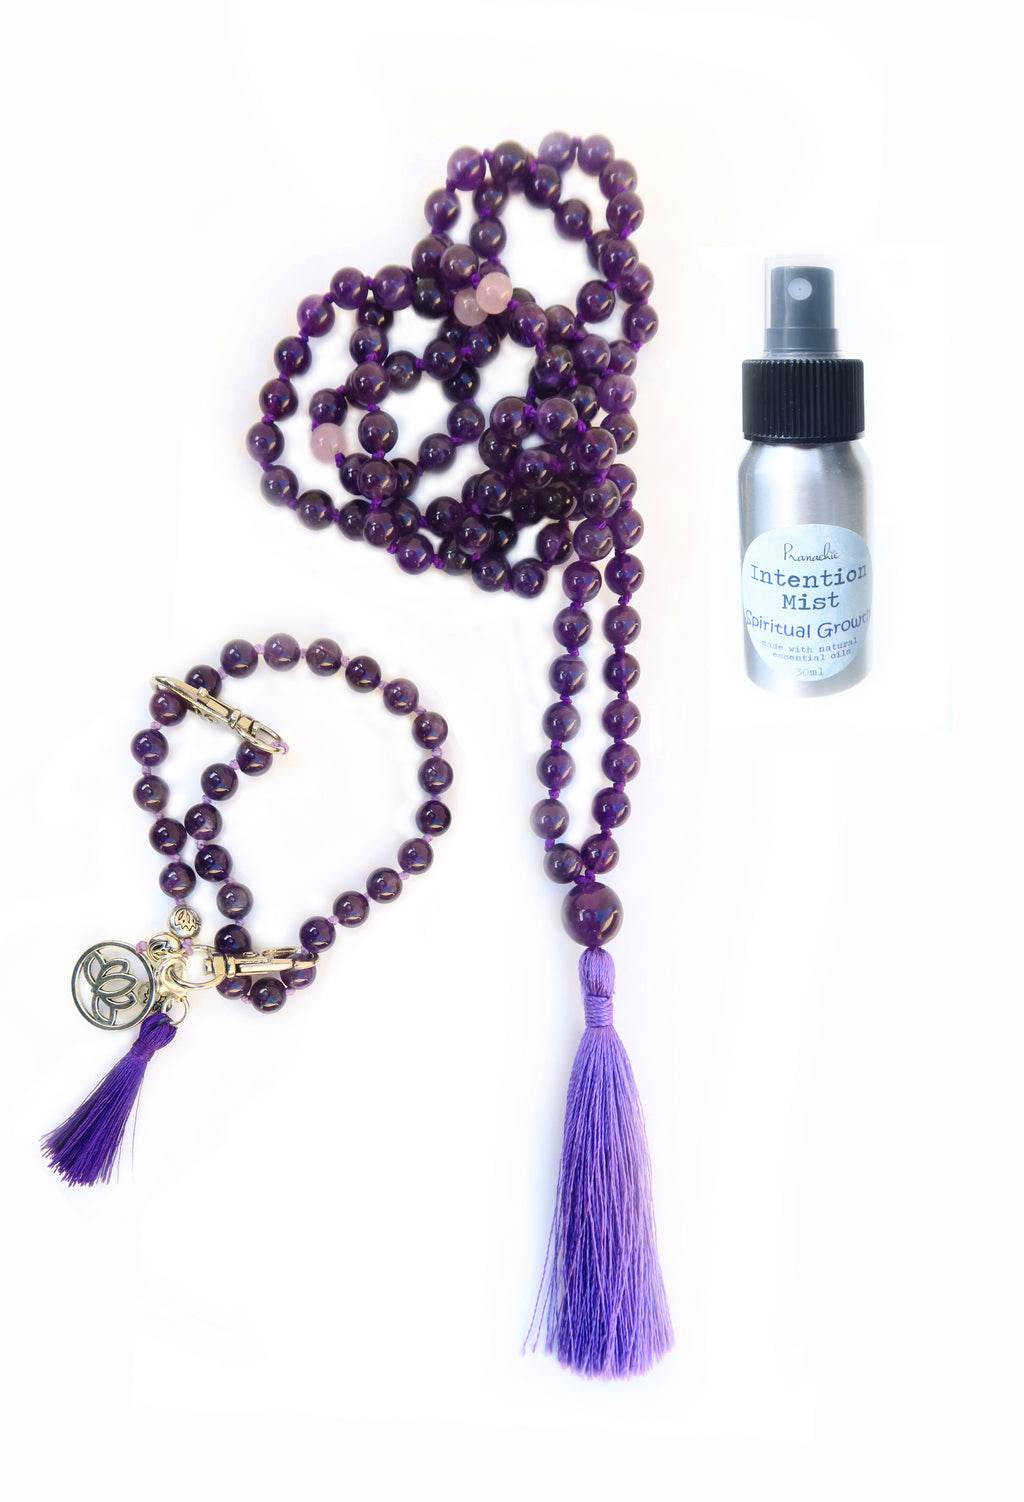 Spiritual Growth Collection - TRUE LIGHT Mala, Pratinu Spiritual Growth Mala Bracelet and Spiritual Growth Intention Mist - Pranachic